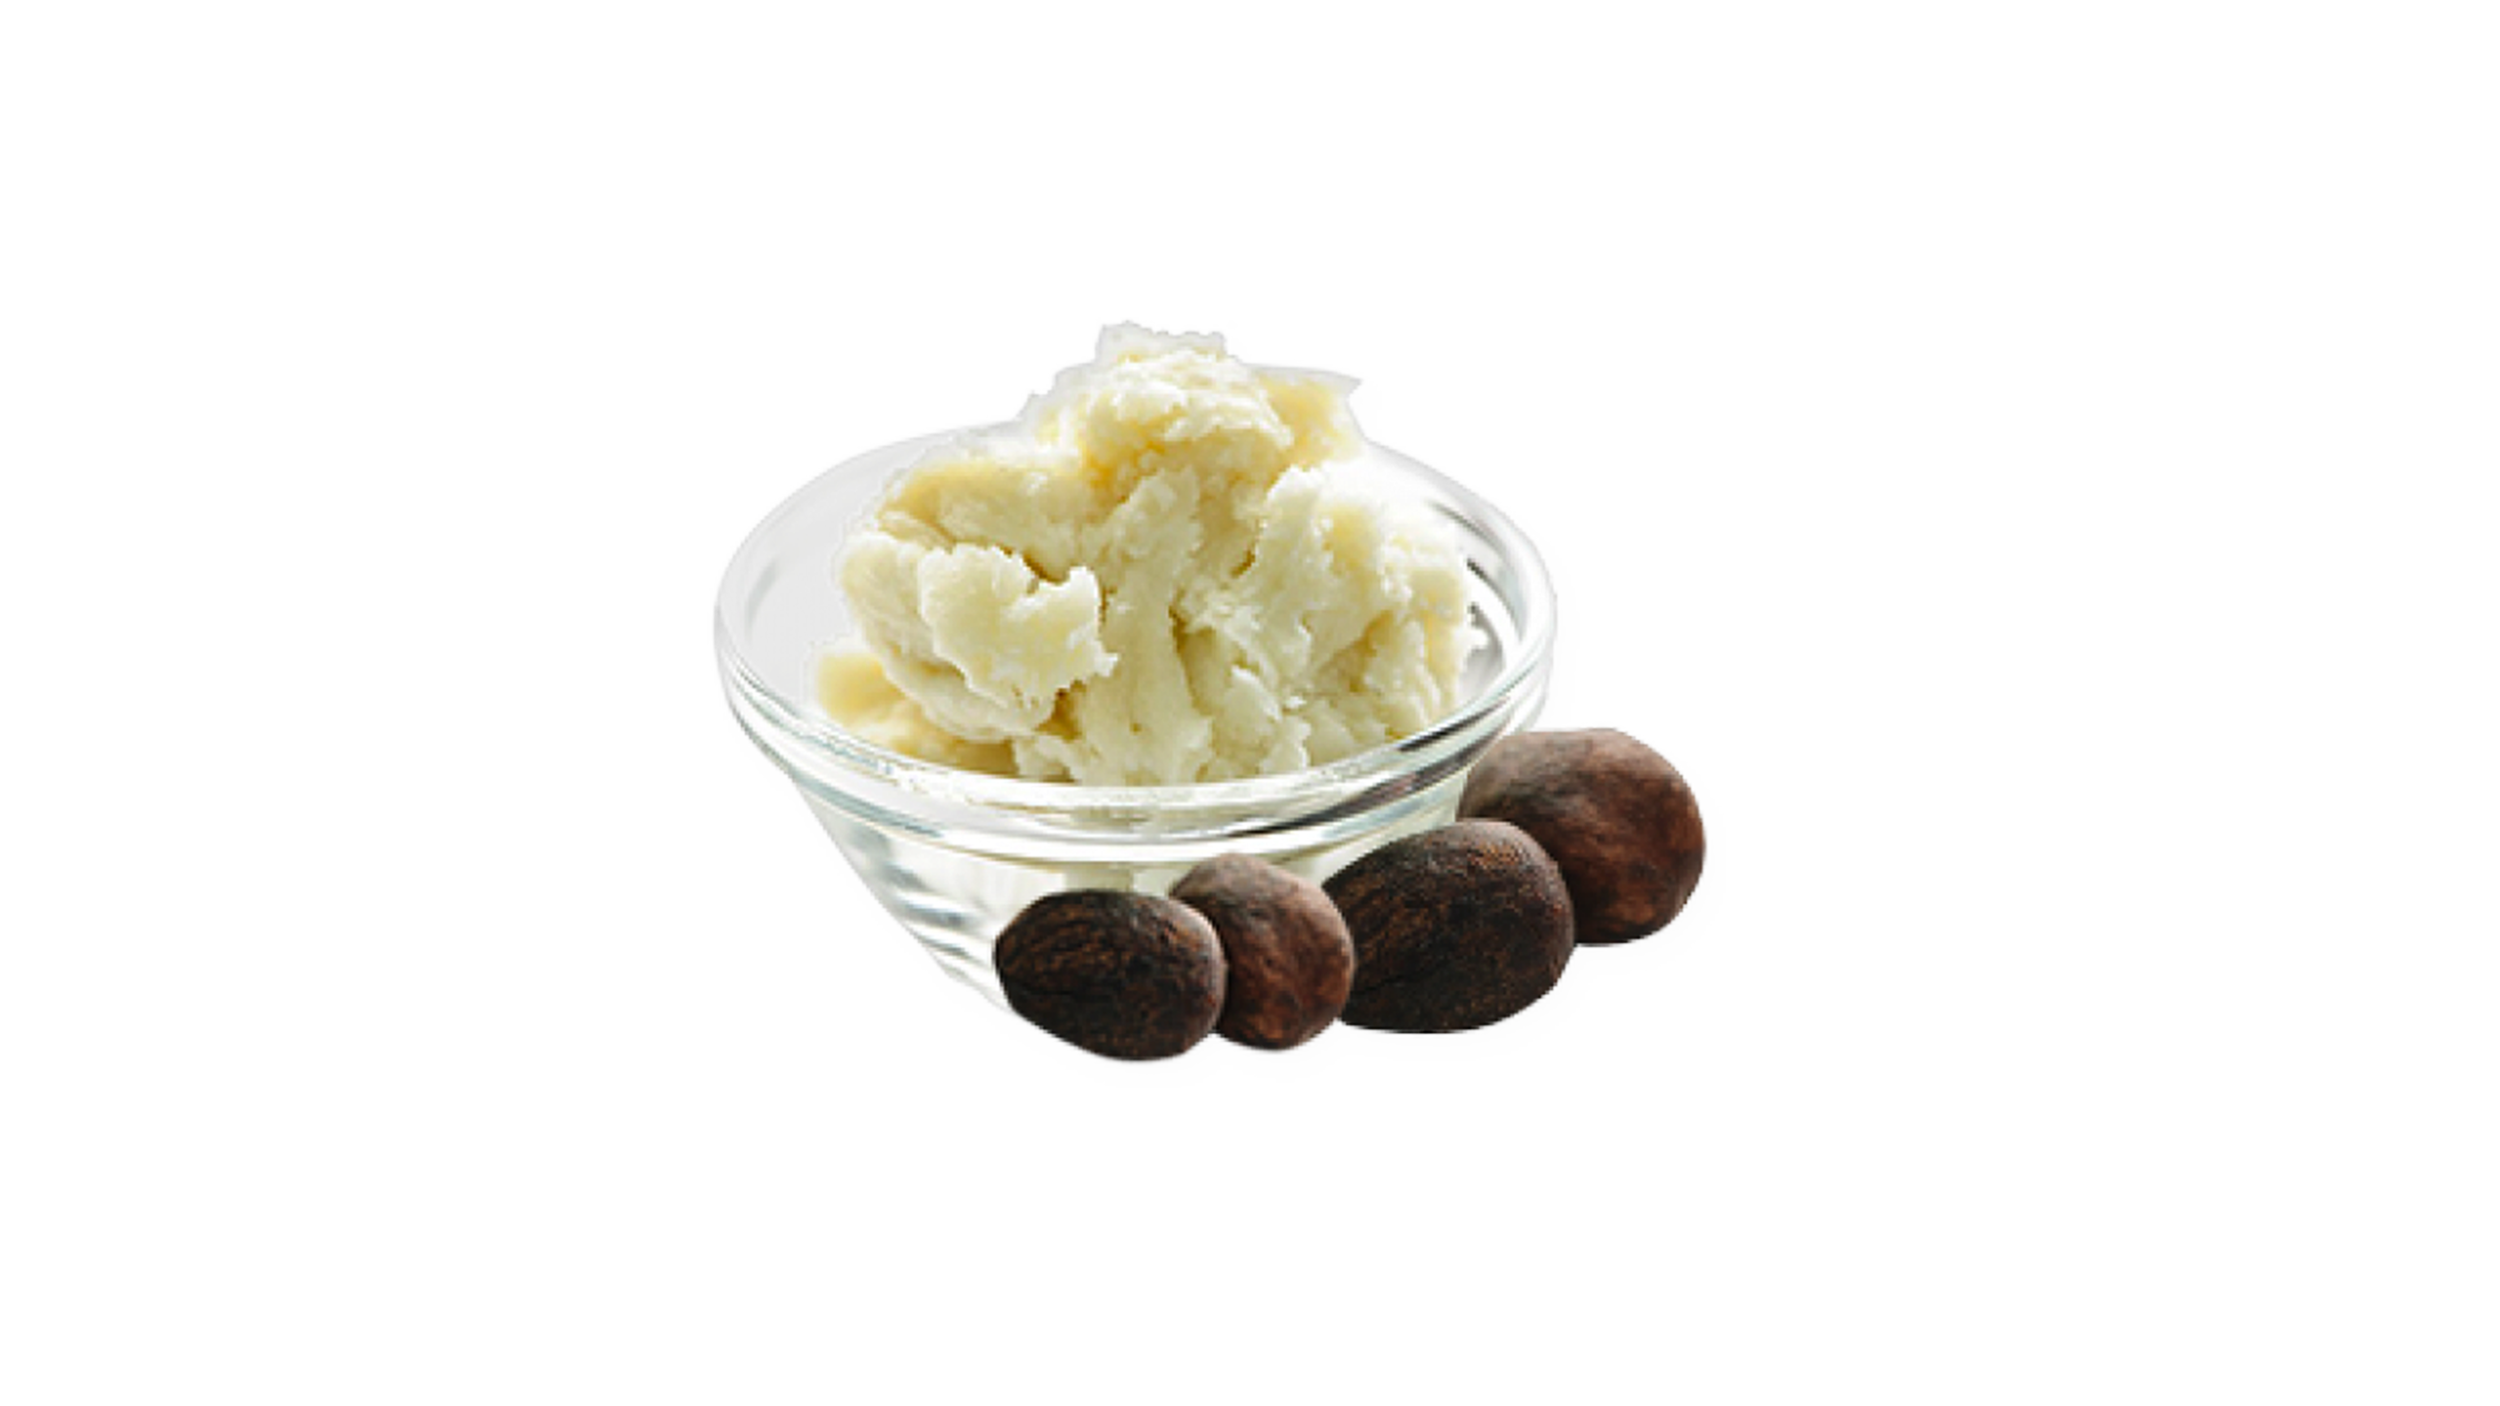 Shea butter picture 1.png